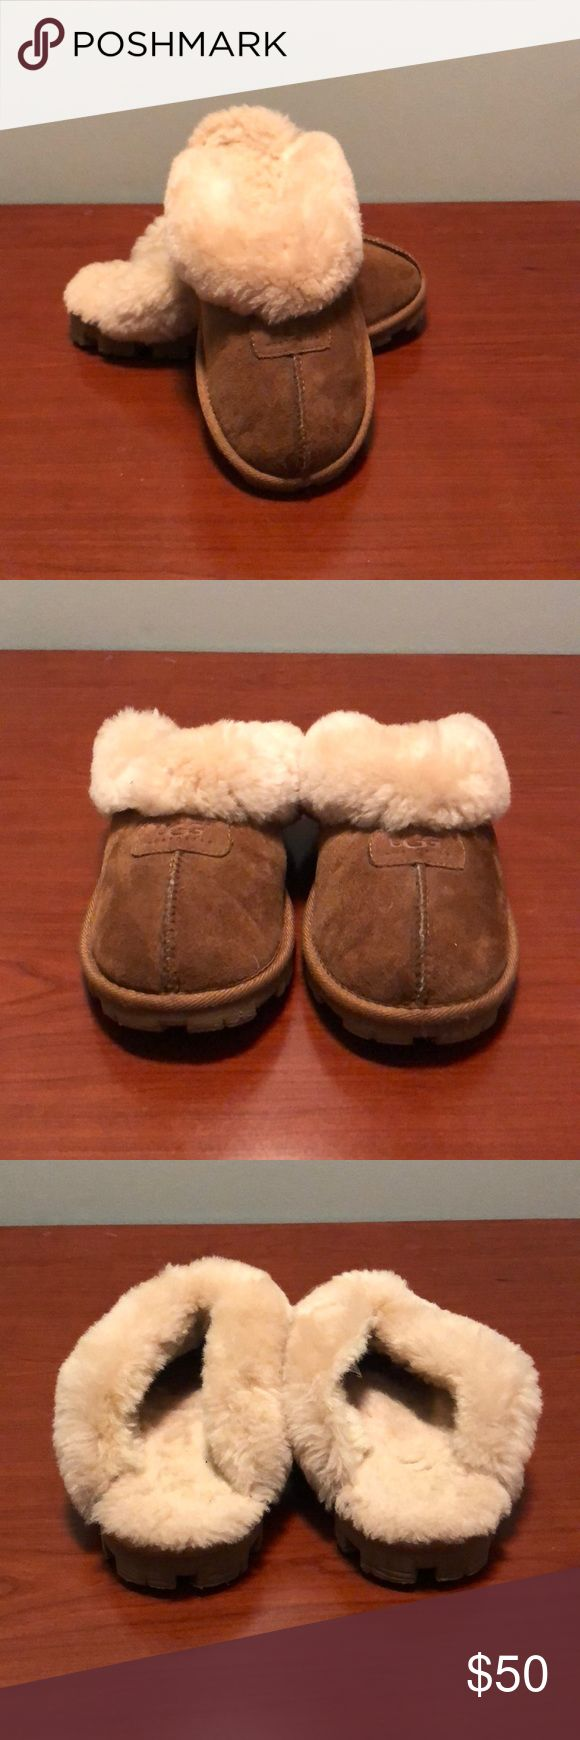 UGG Sueded Sheepskin Slippers Size 5 Previously loved UGG Sueded Sheepskin Slippers Size 5. Warm and comfy. Can be worn outside or inside. Plenty of life left in these beauties! UGG Shoes Slippers